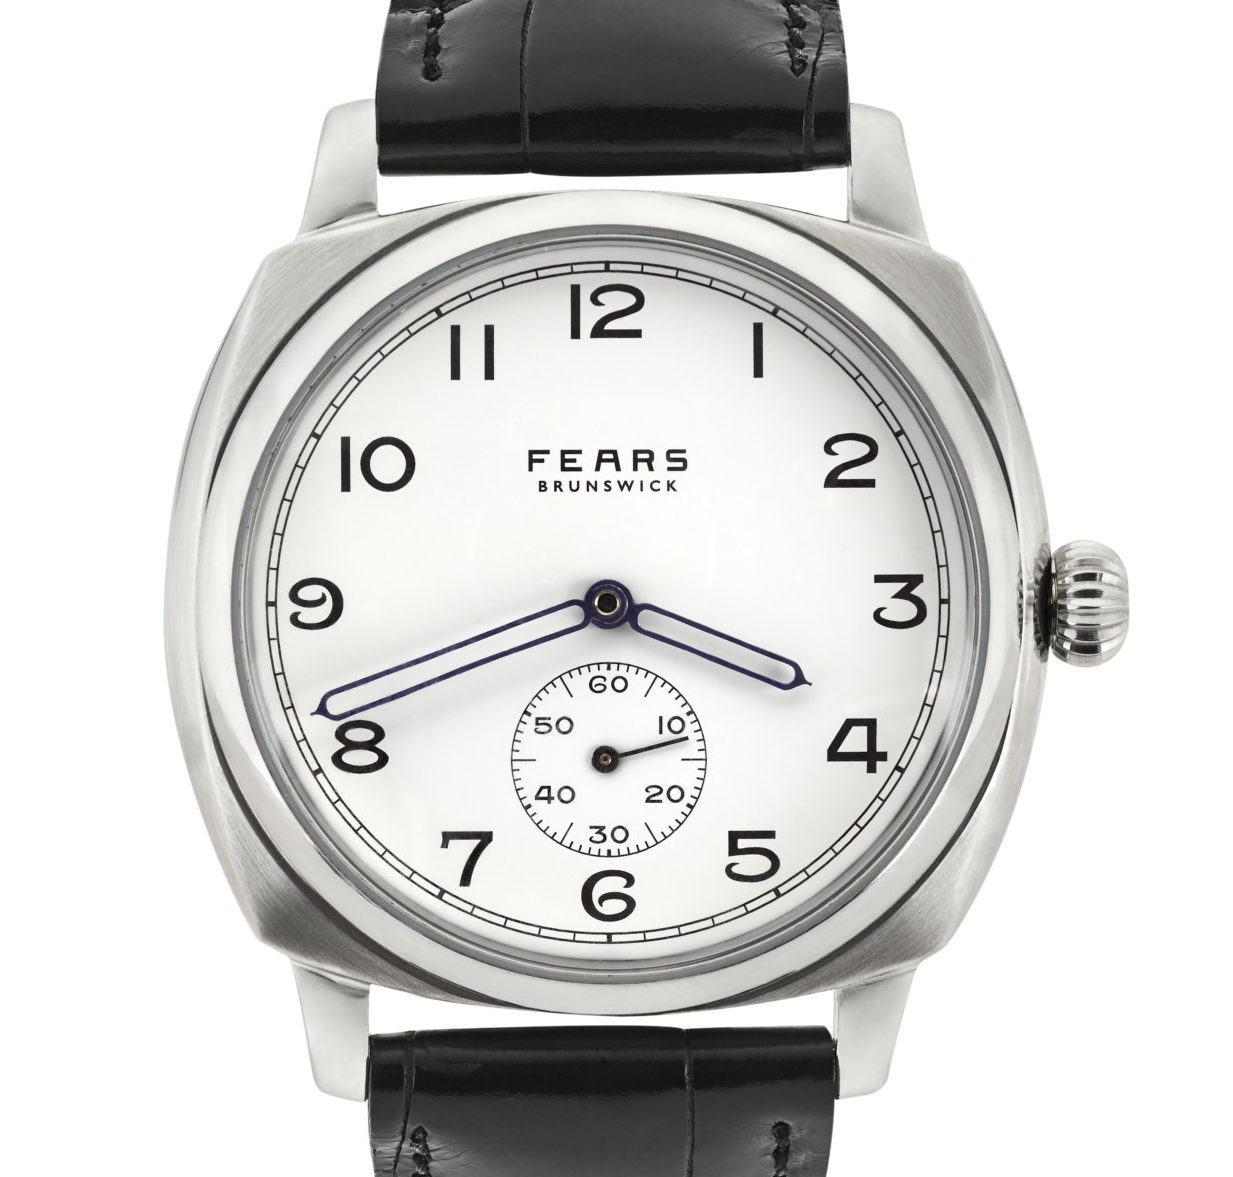 Fears Brunswick – Enamel White dial on Black Alligator